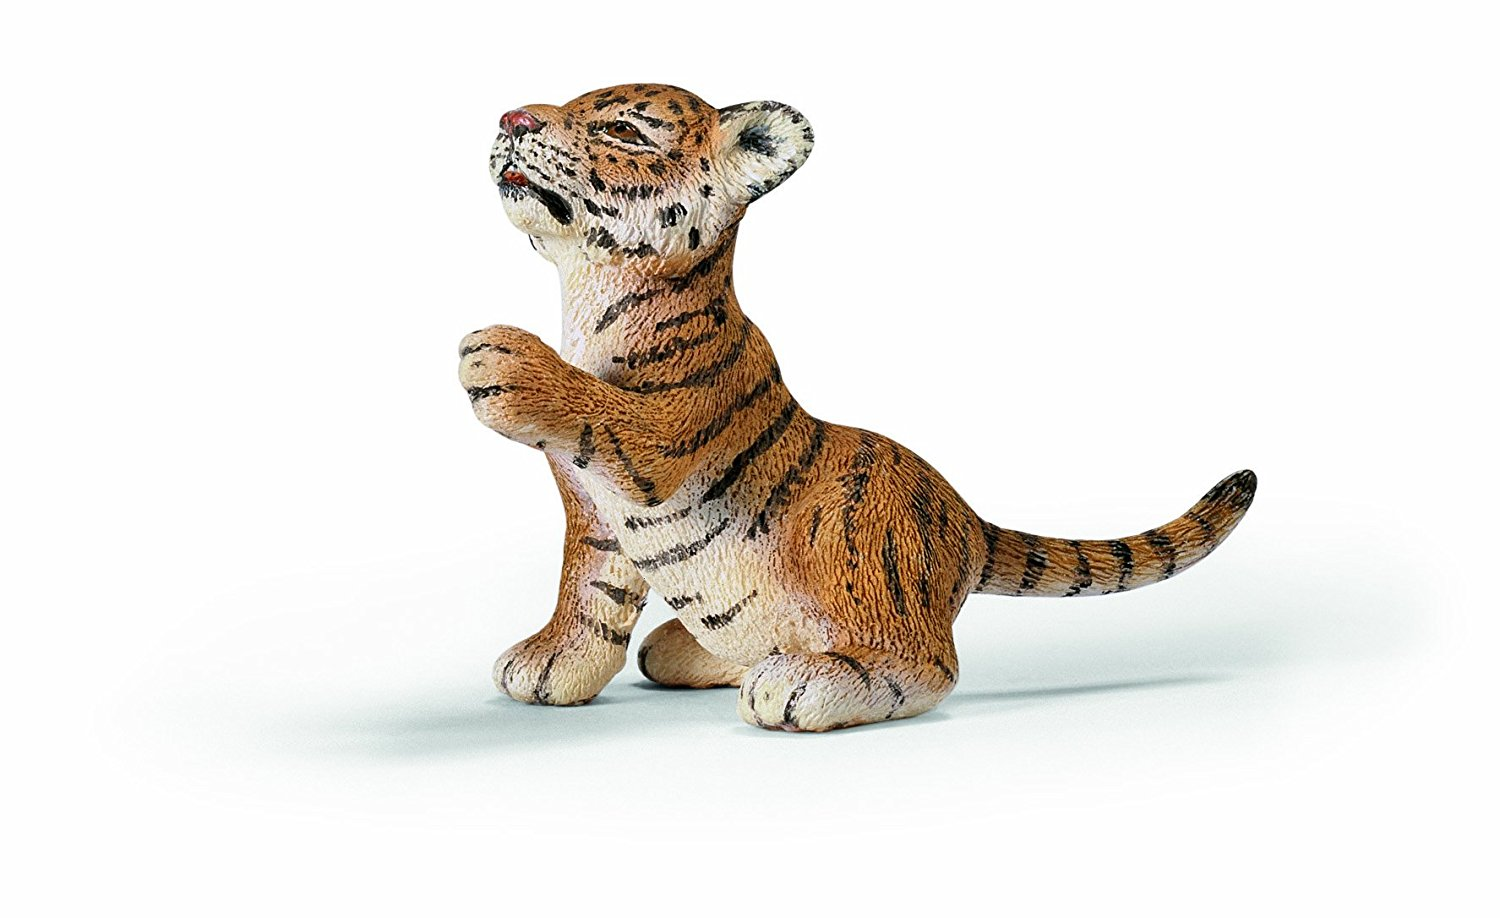 e79a821a537 Buy Schleich Tiger Standing Cub in Cheap Price on Alibaba.com